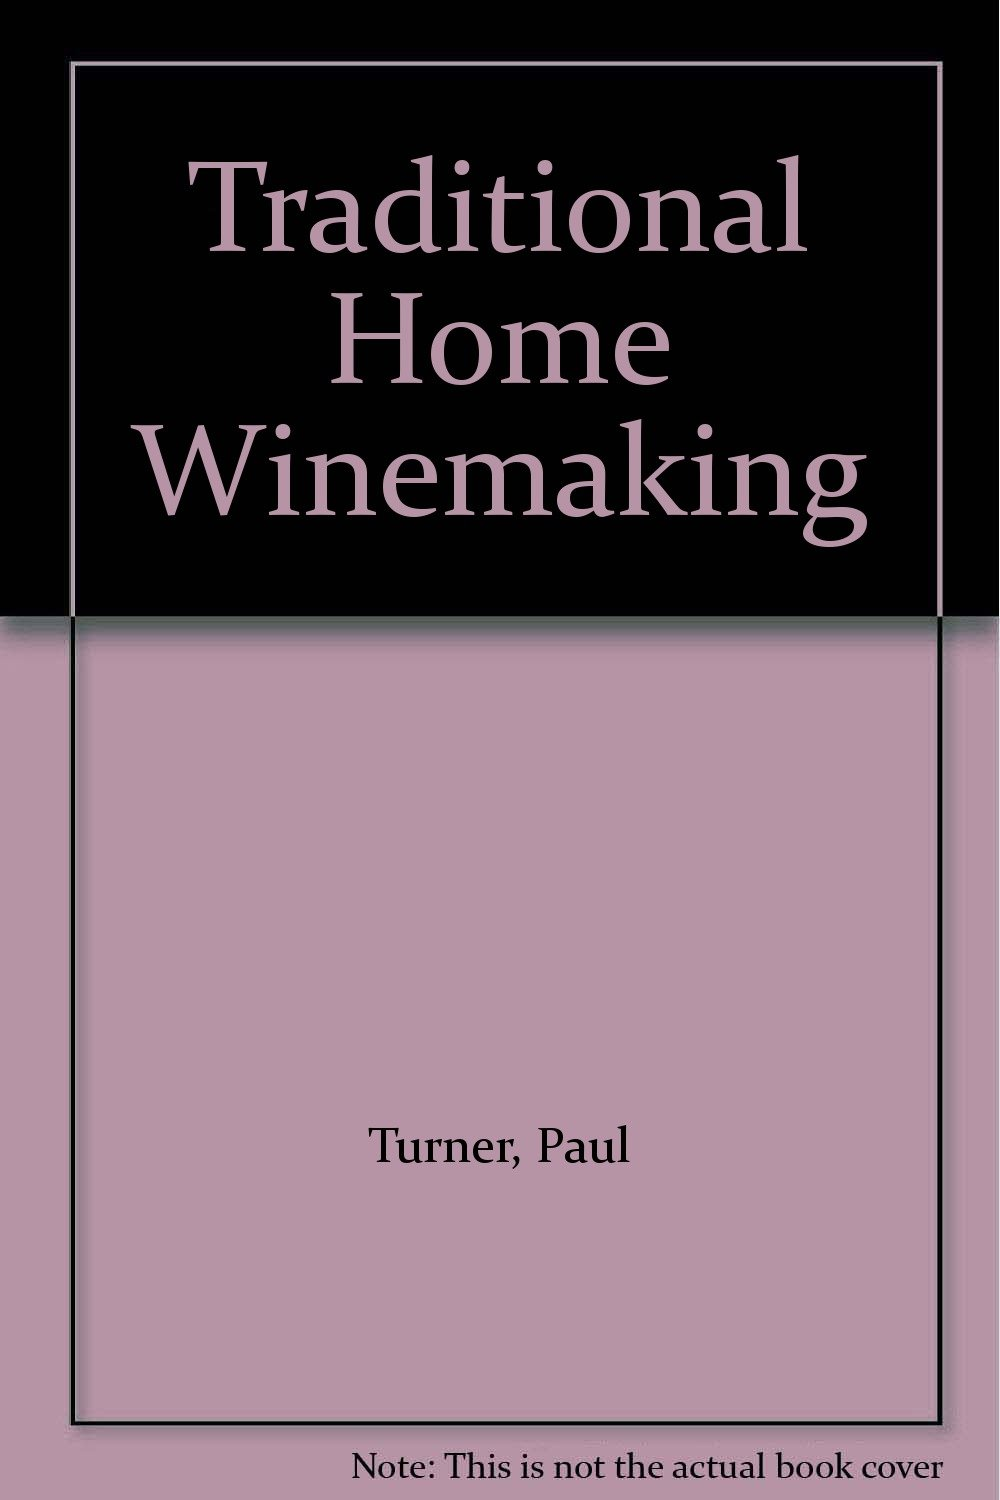 Traditional Home Winemaking PDF